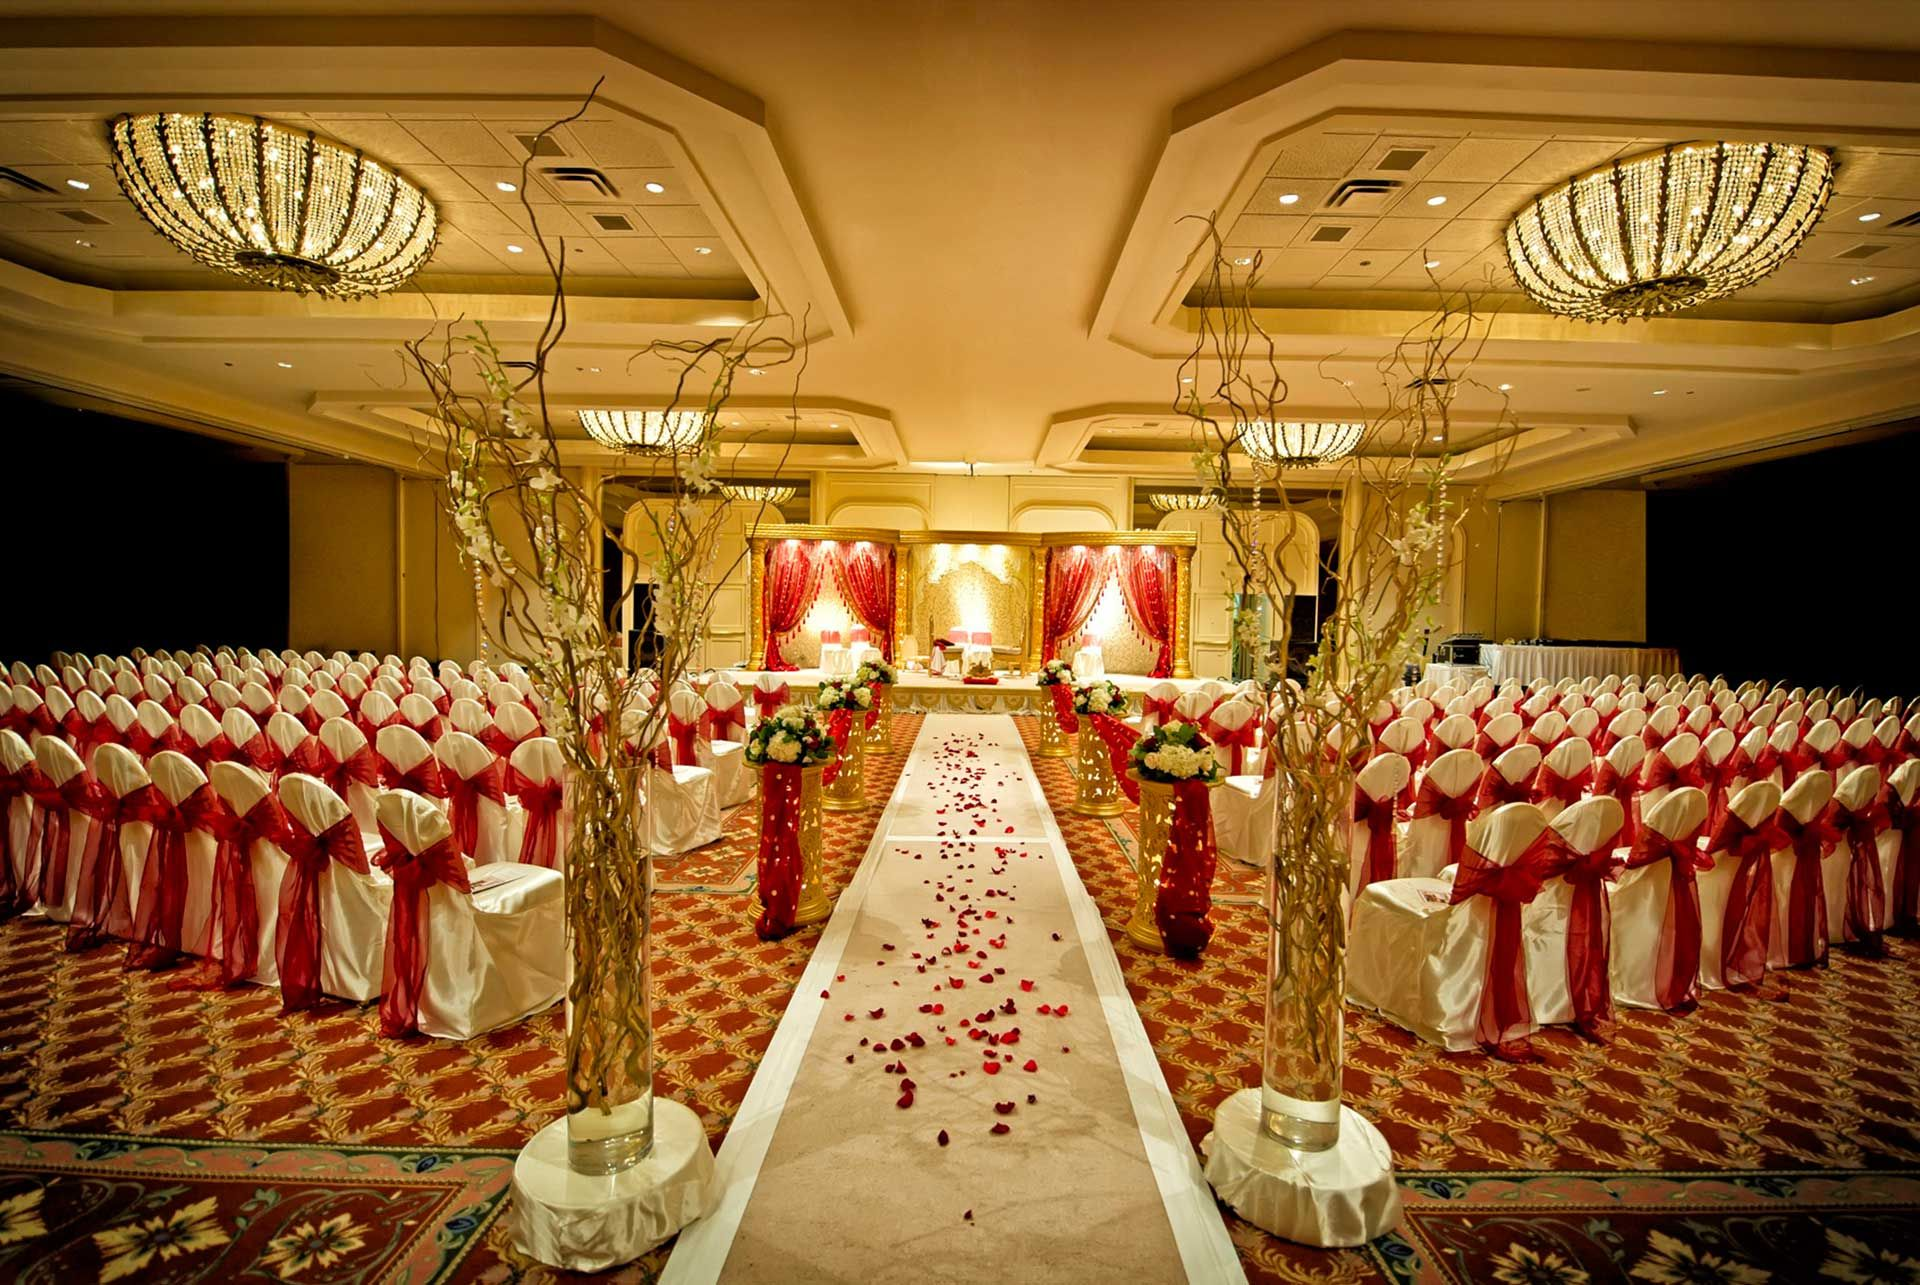 Indian banquet hall banquet halls pinterest banquet weddings indian banquet hall junglespirit Images